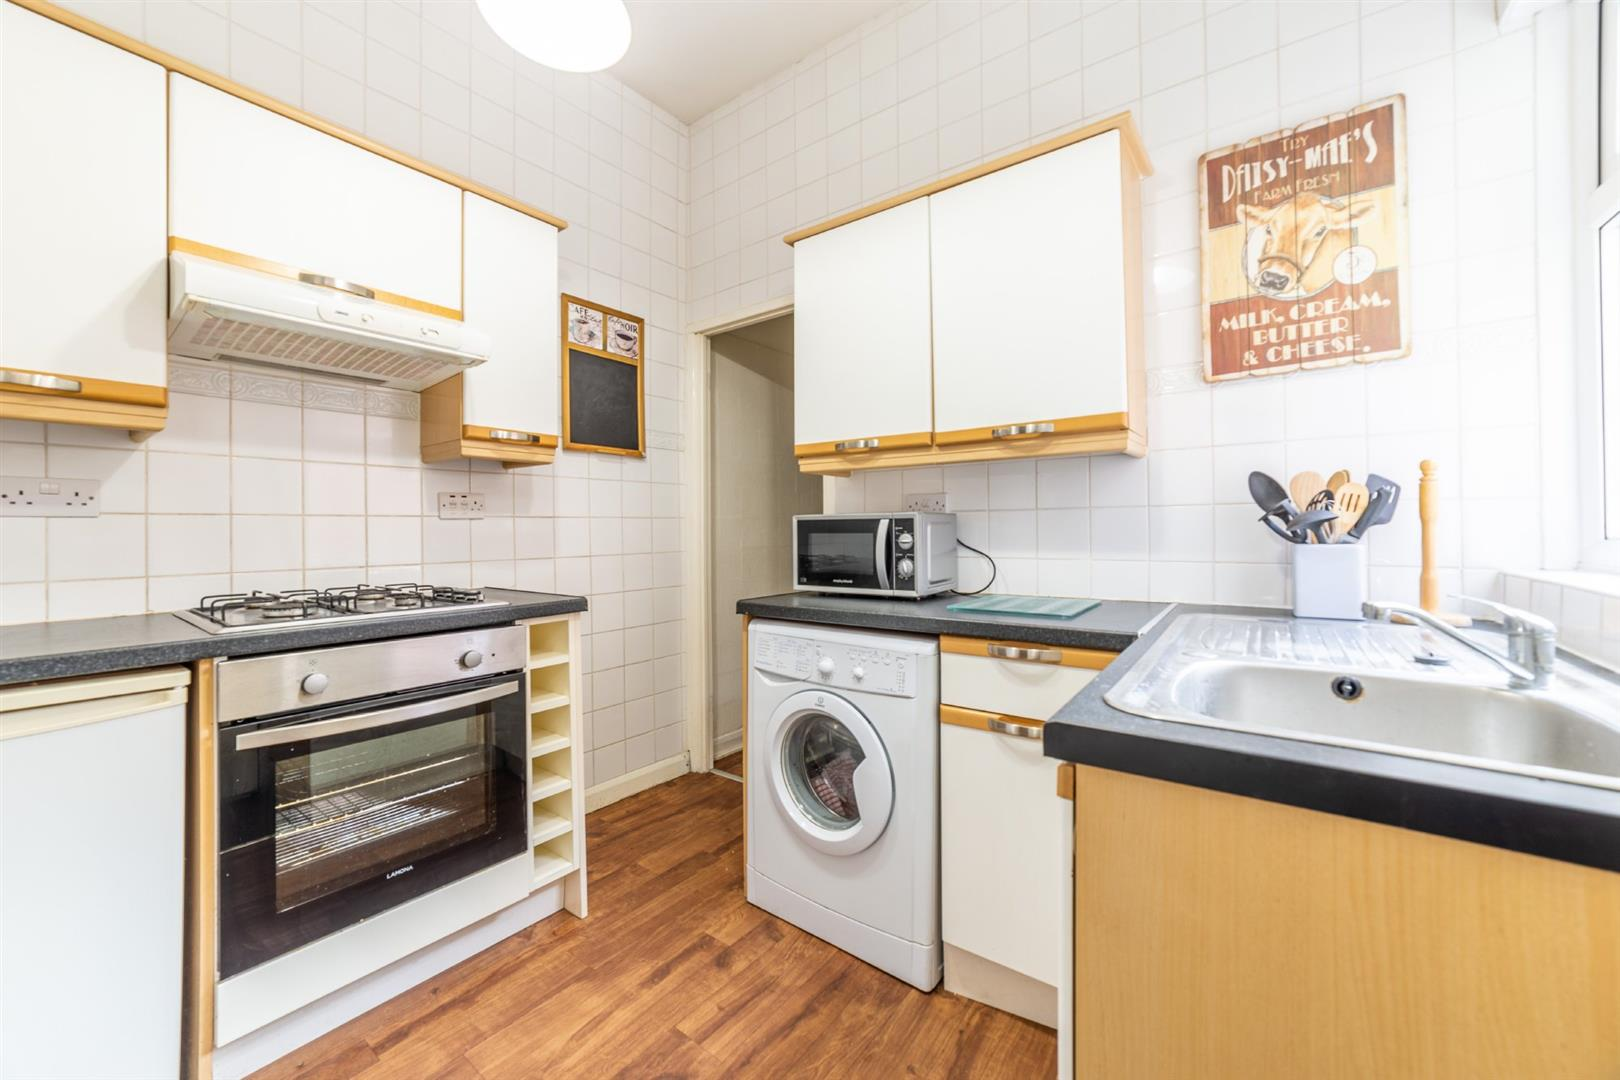 3 bed flat to rent in Newcastle Upon Tyne, NE6 5TA  - Property Image 2